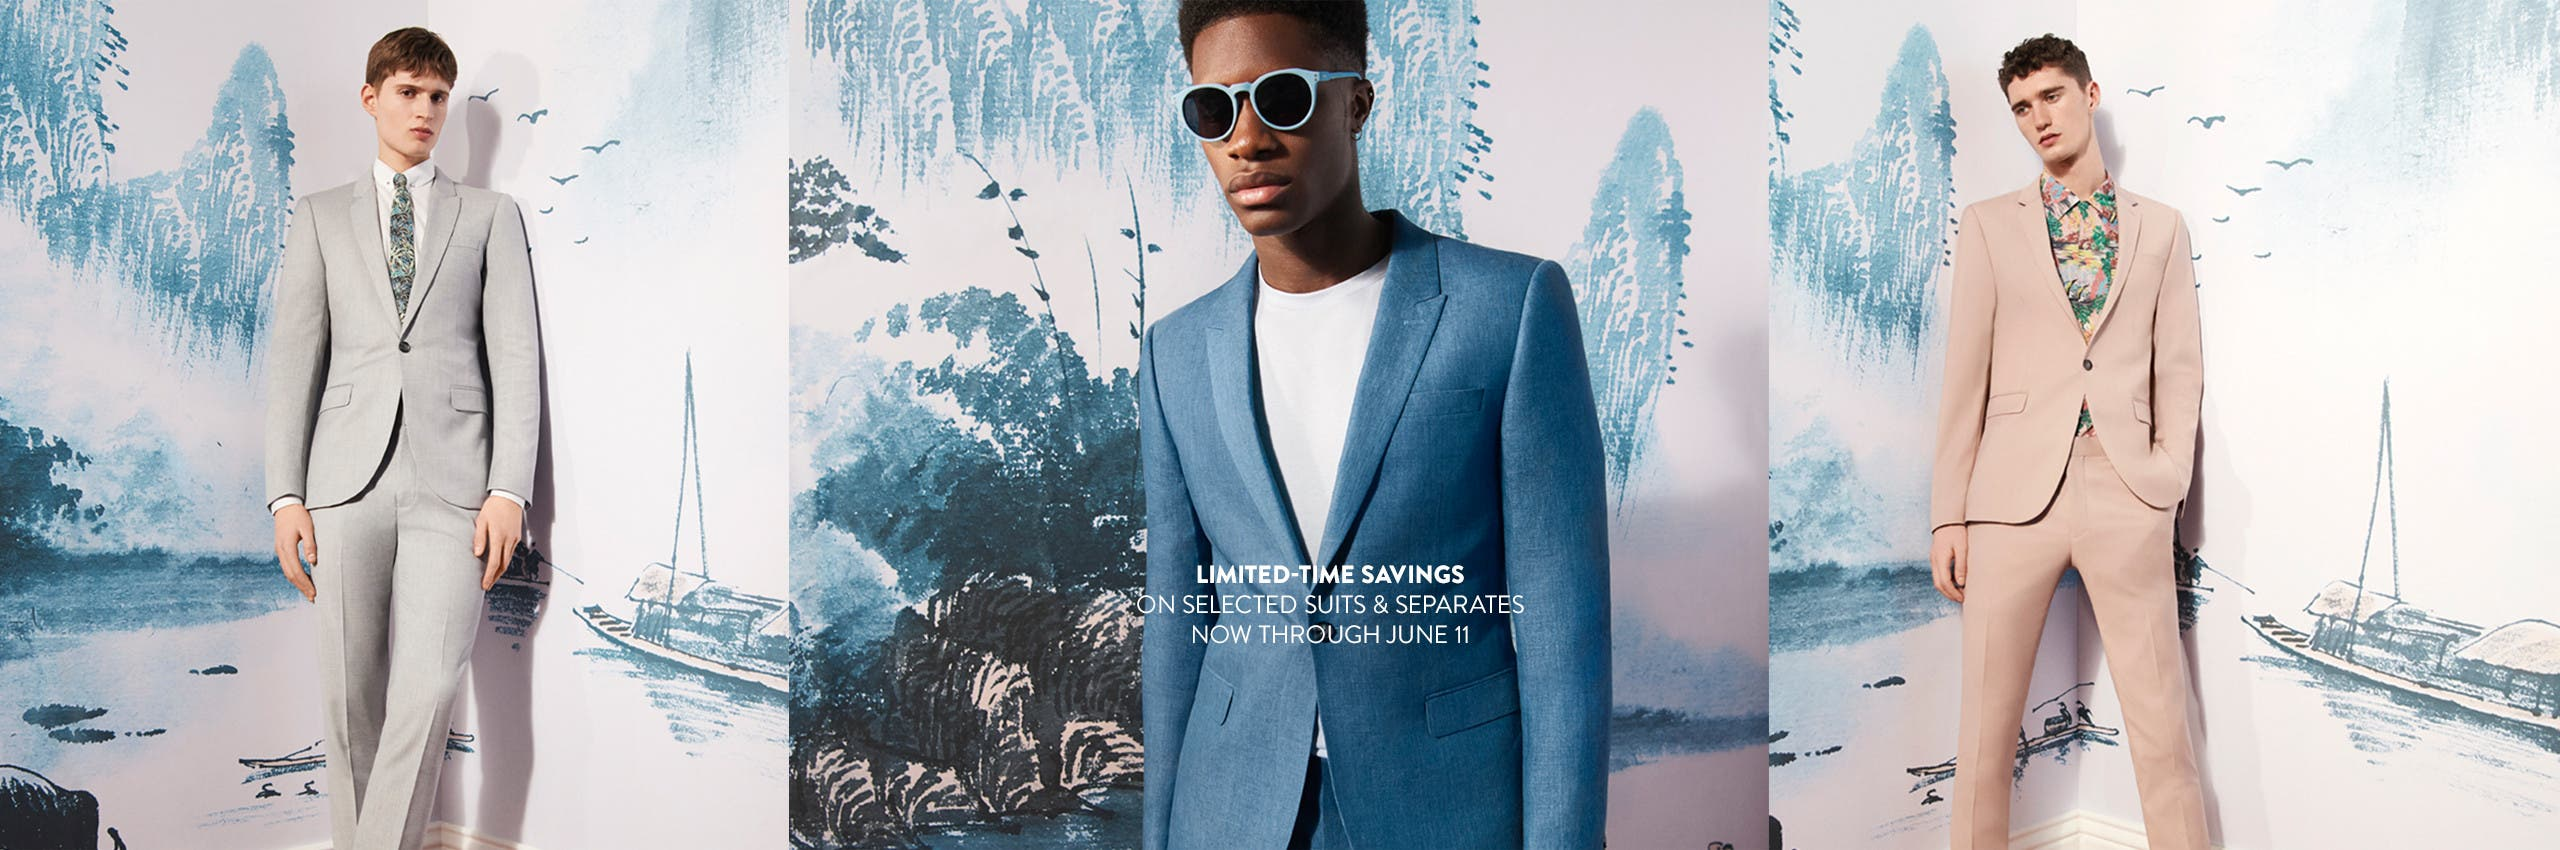 Limited-time savings on selected suits and separates, through June 11.